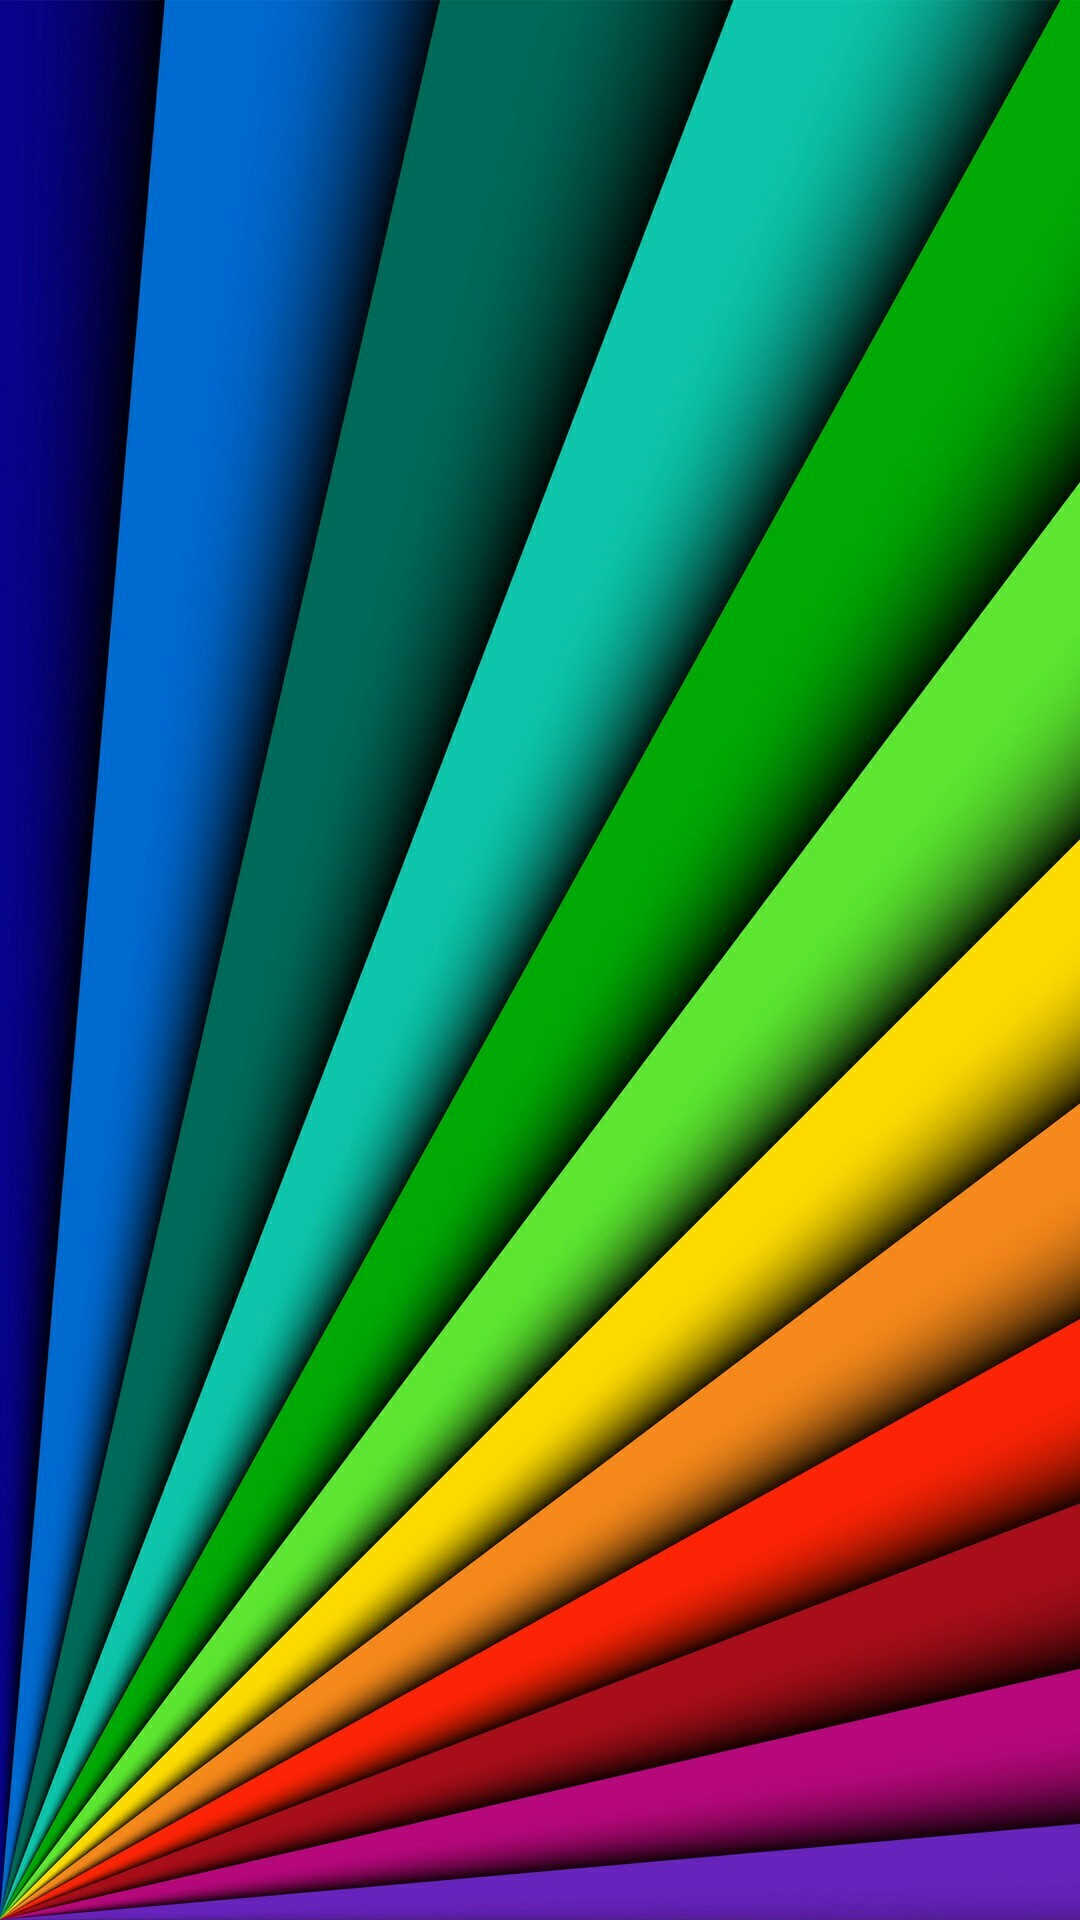 Fanned Out Primary Colors Wallpaper